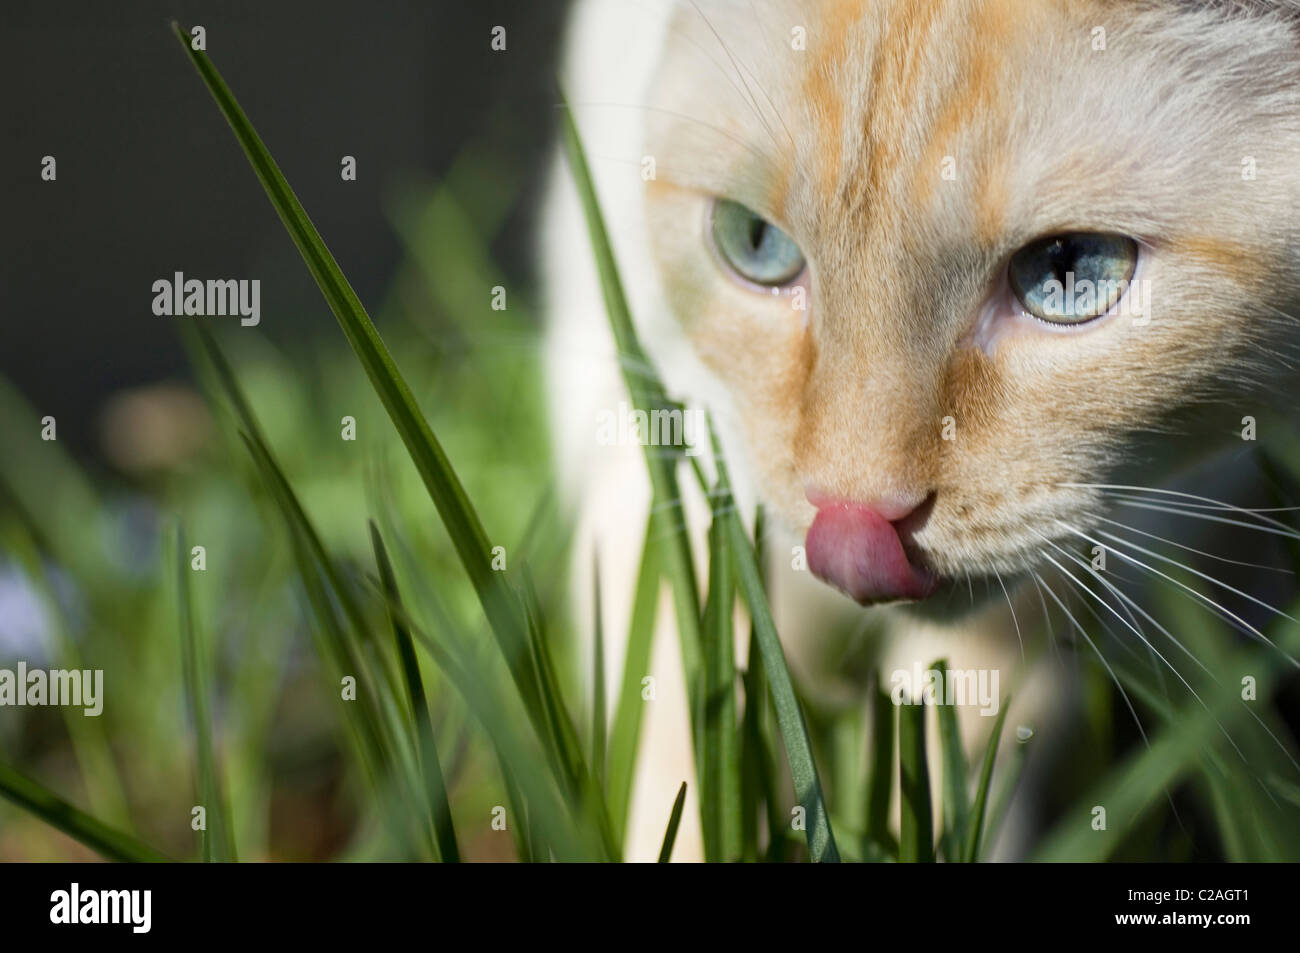 Closeup of white cat in grass, looking predatory and licking nose. - Stock Image